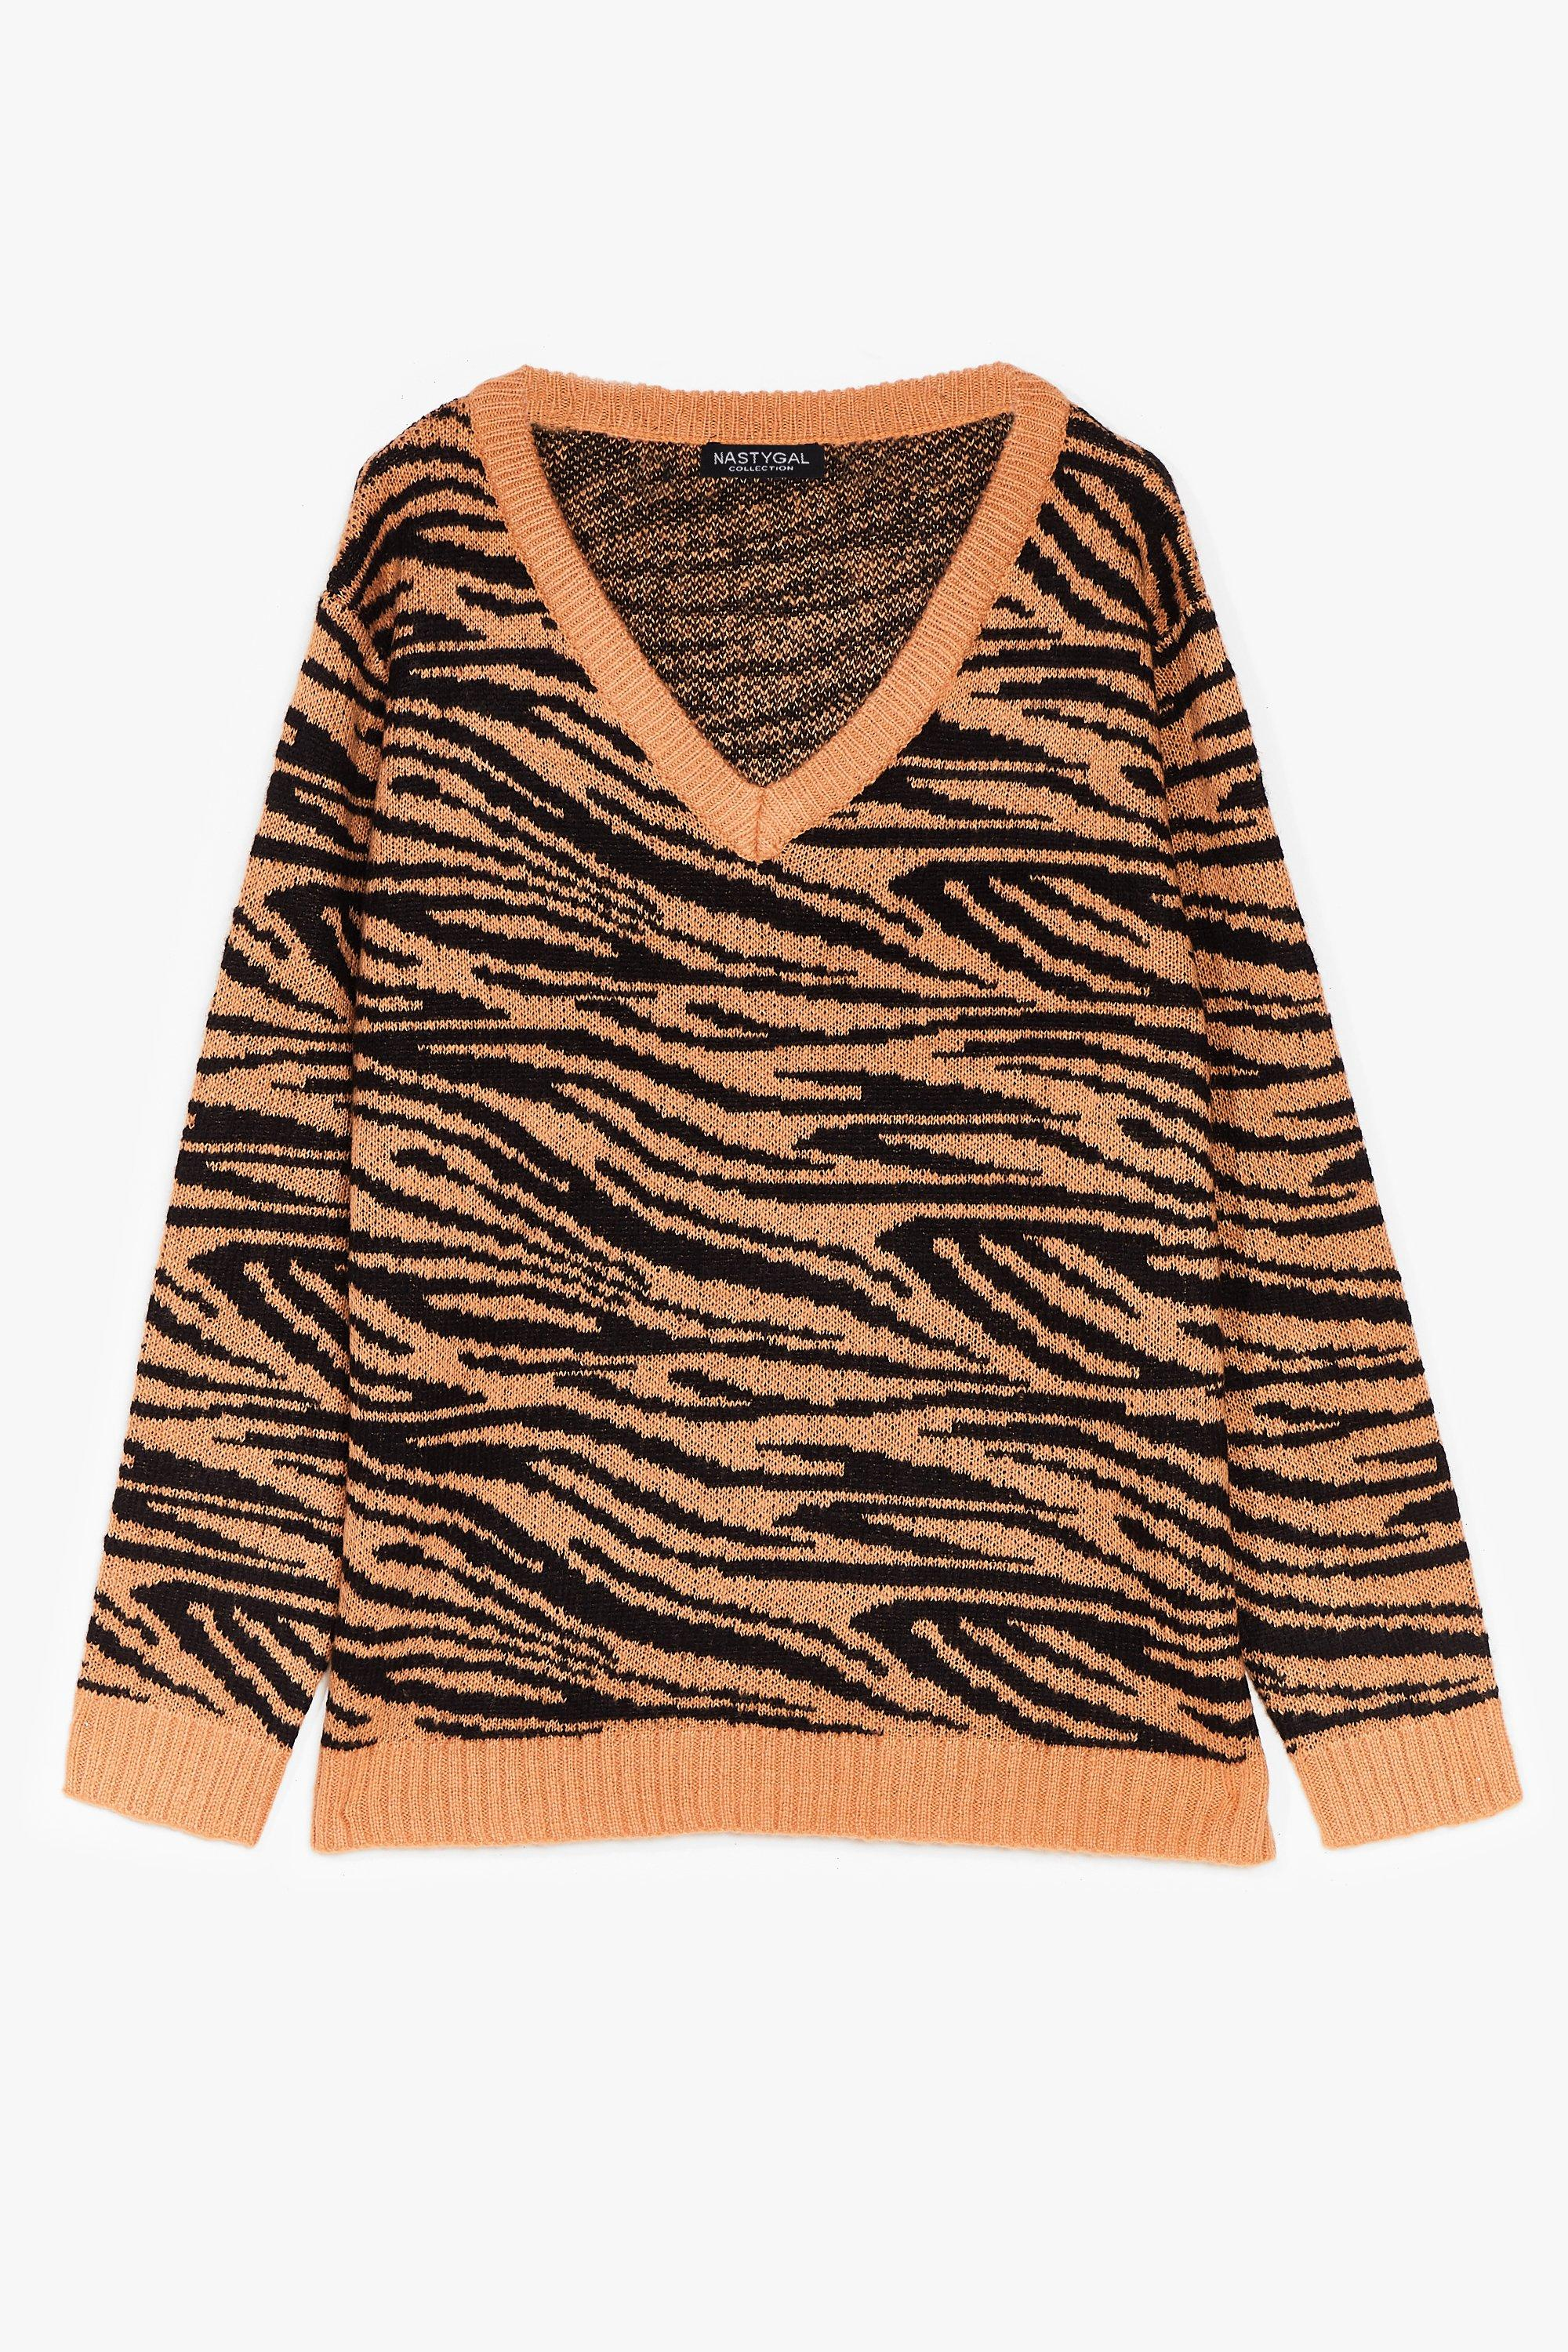 Herd You Callin' Plus Knit Zebra Sweater 6